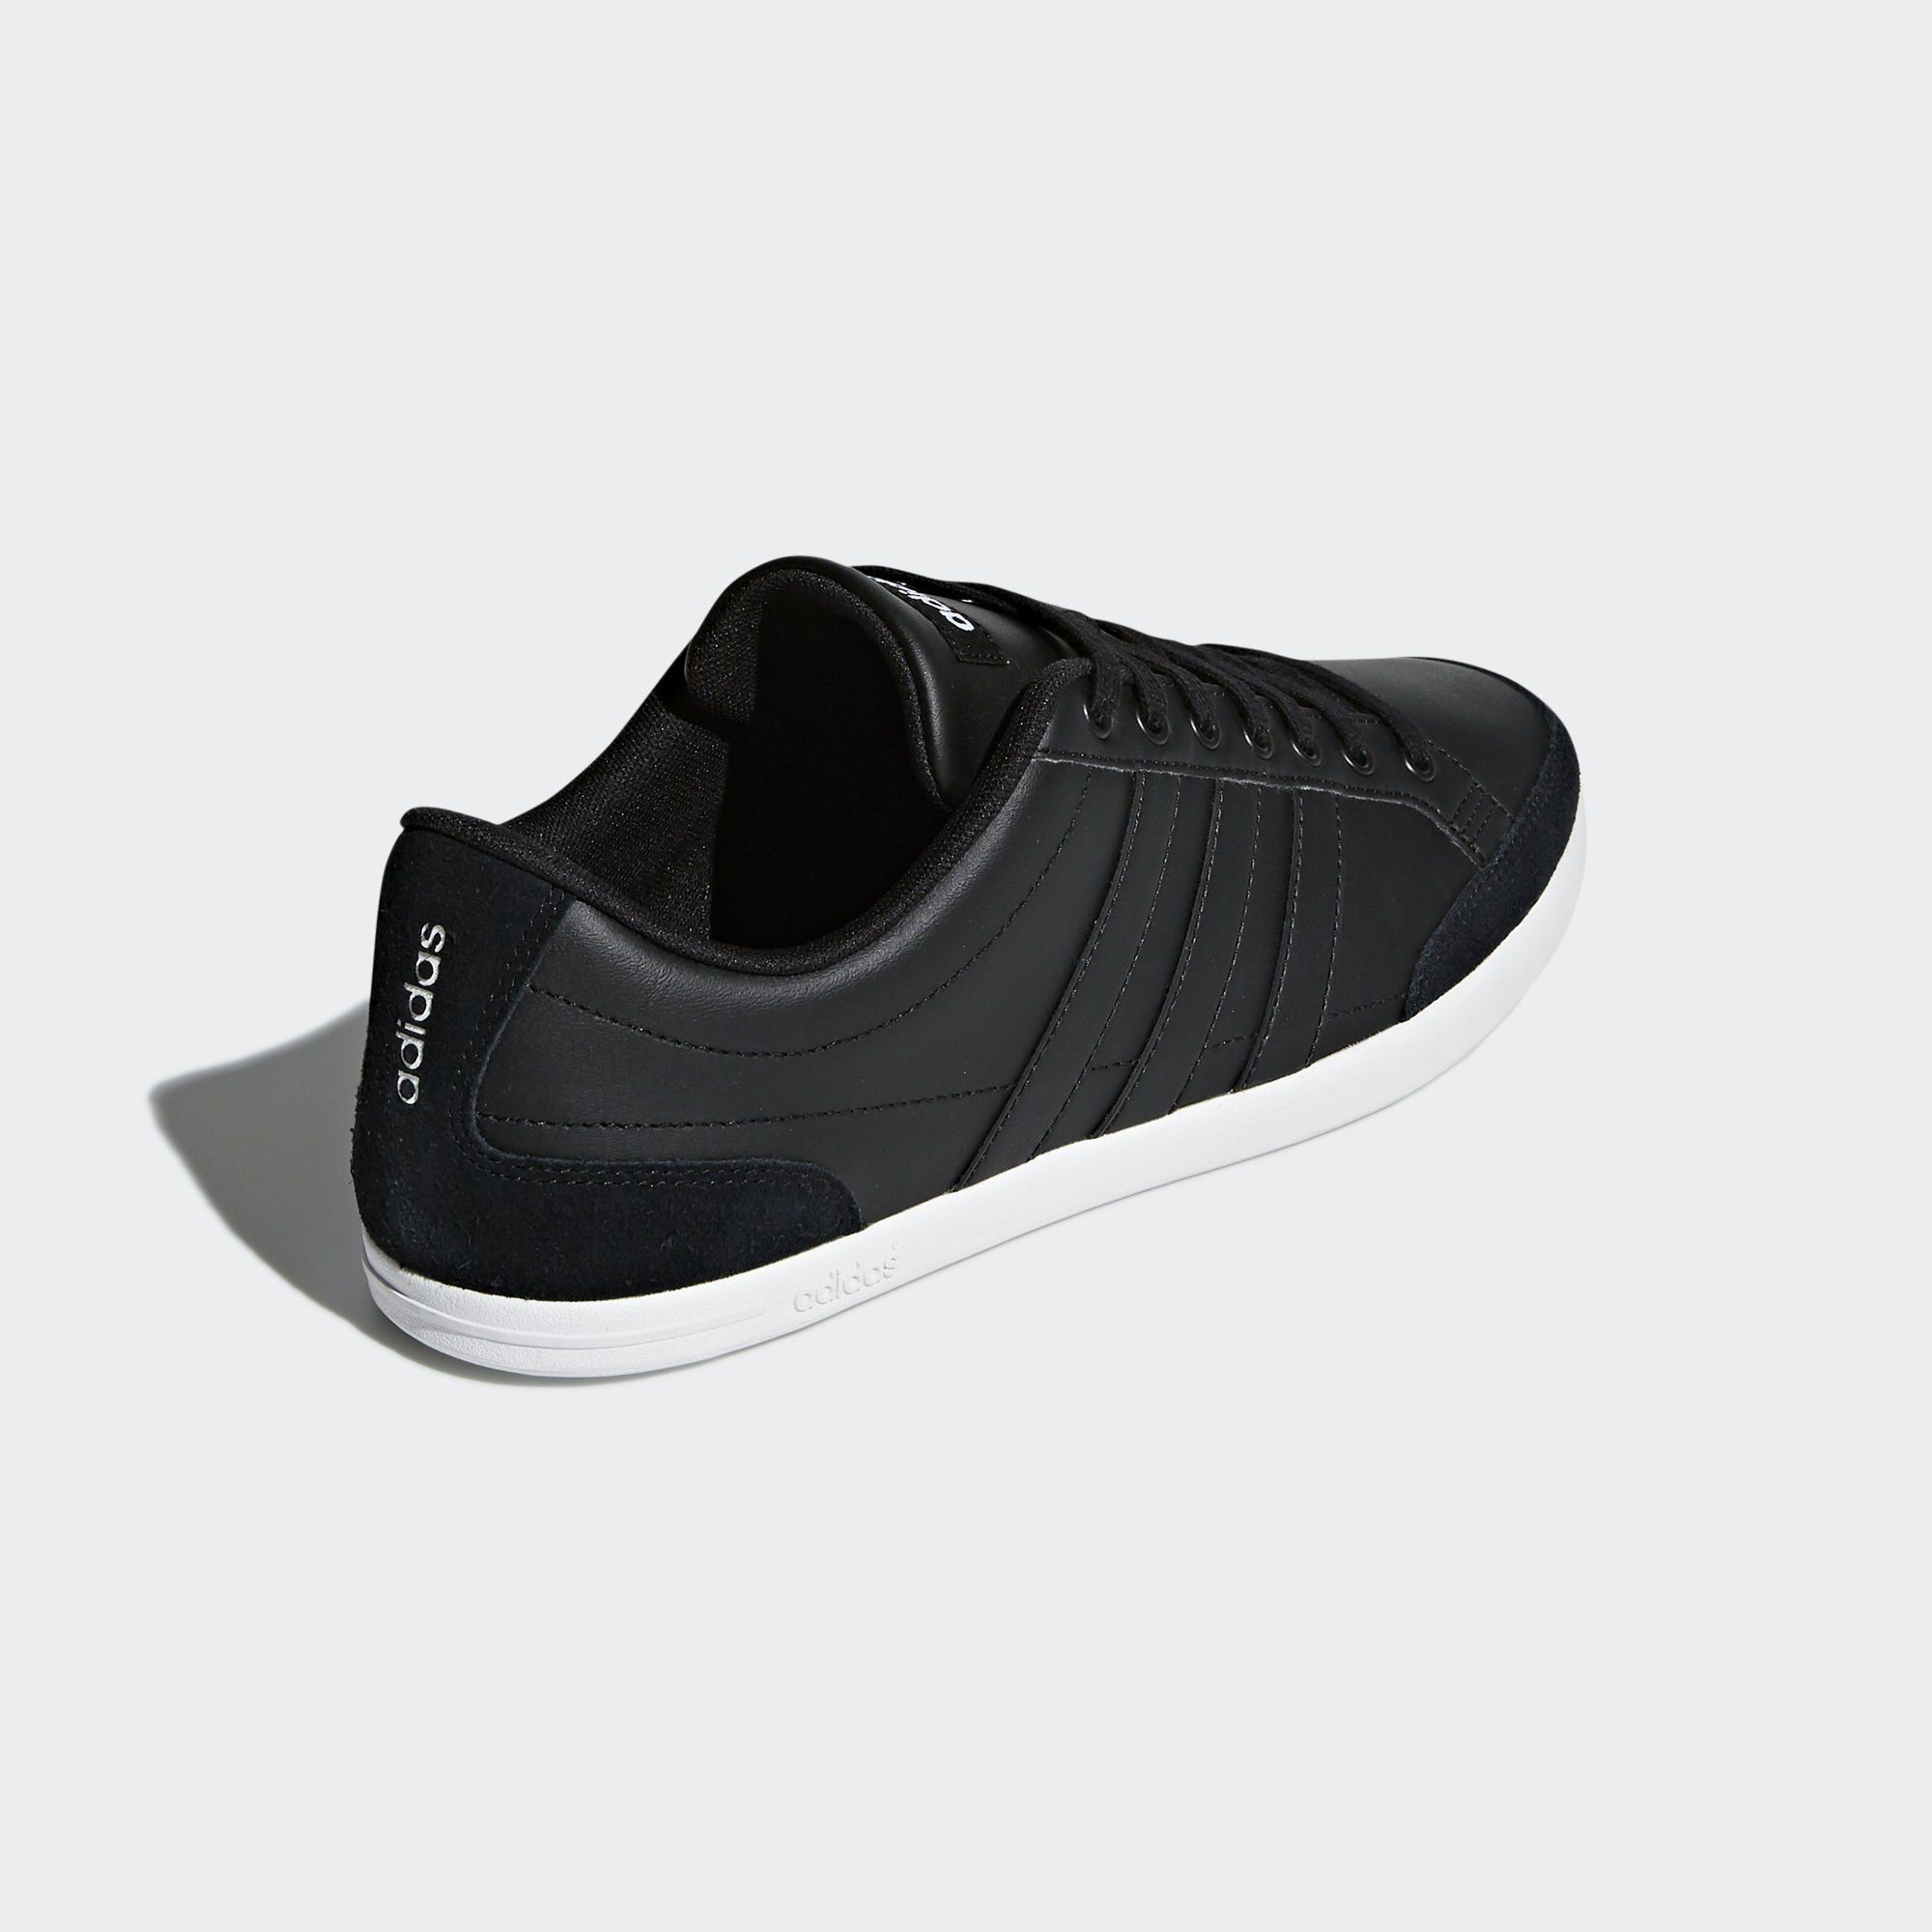 a56c813cd سعر Adidas Adidas MEN ESSENTIALS CAFLAIRE SHOES فى مصر | جوميا ...